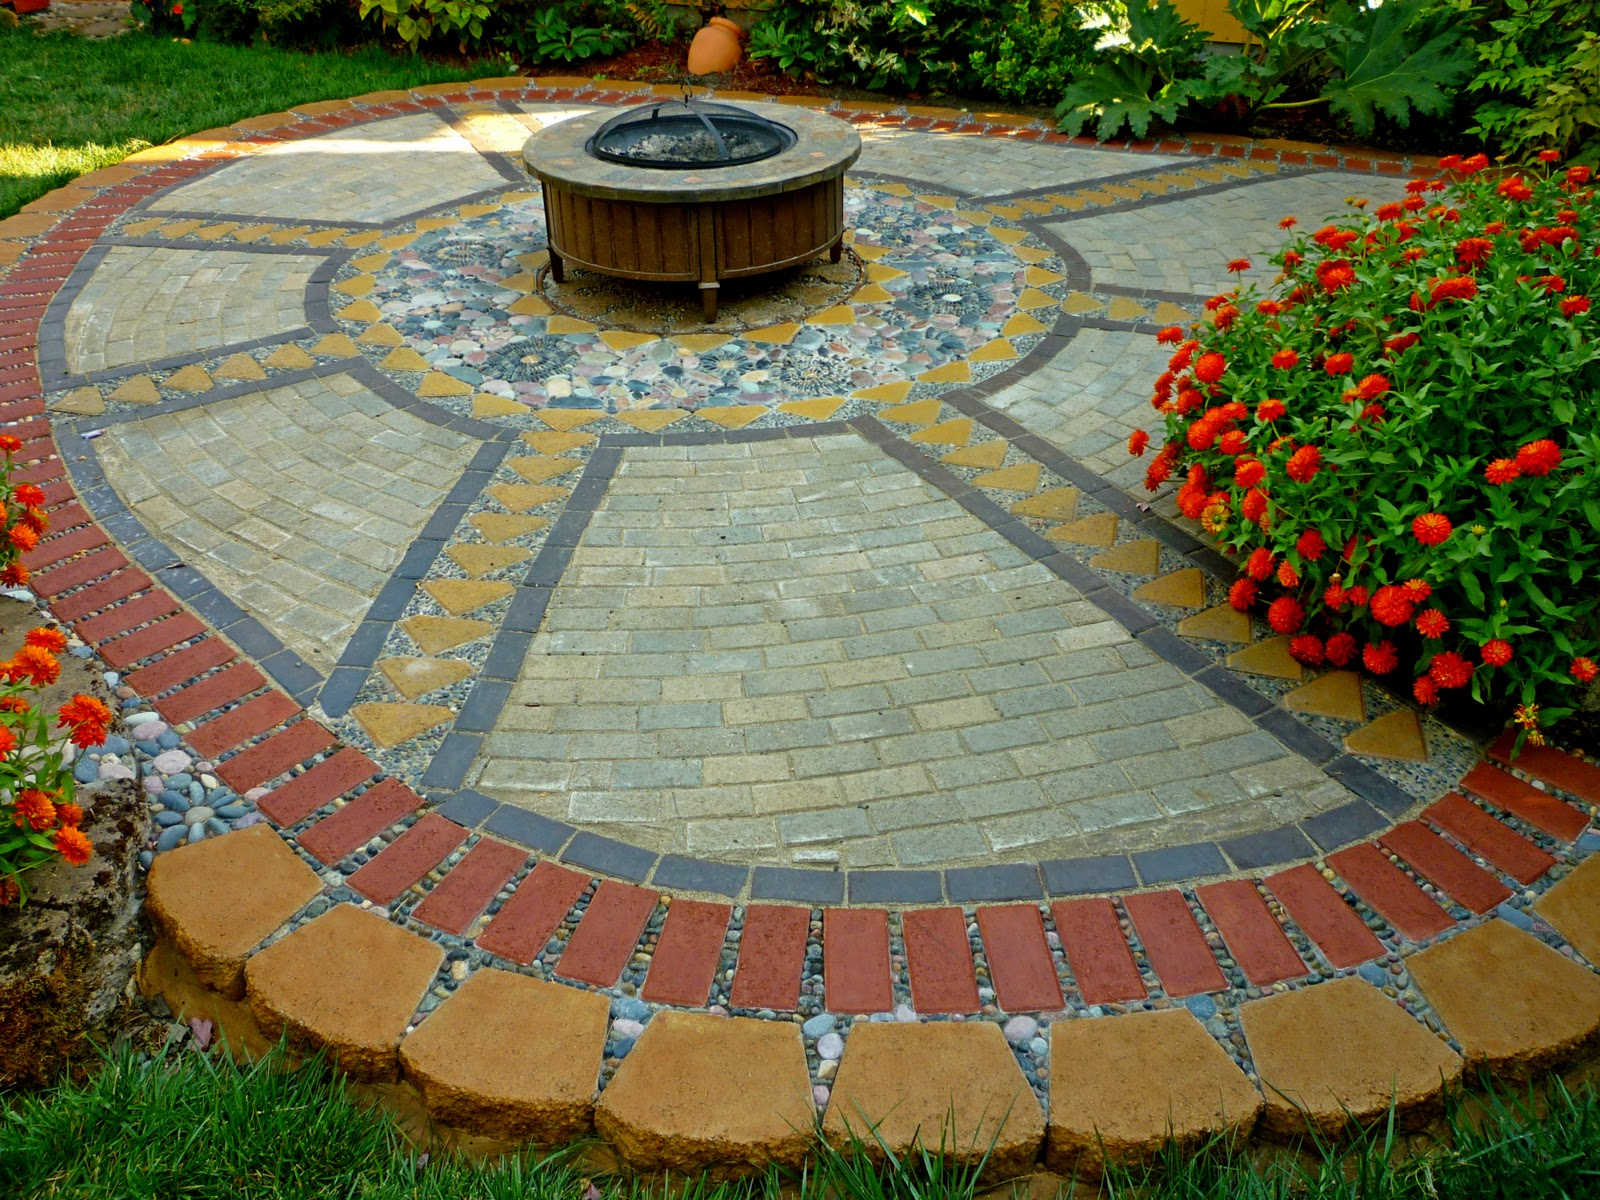 Landscaping Paths With De posed Granite additionally Making Paver And Pebble Mosaic Patio moreover 468655904945794435 likewise Cbf94e99a53a8287 as well Outdoor Living Spaces. on lowes landscape patio pavers